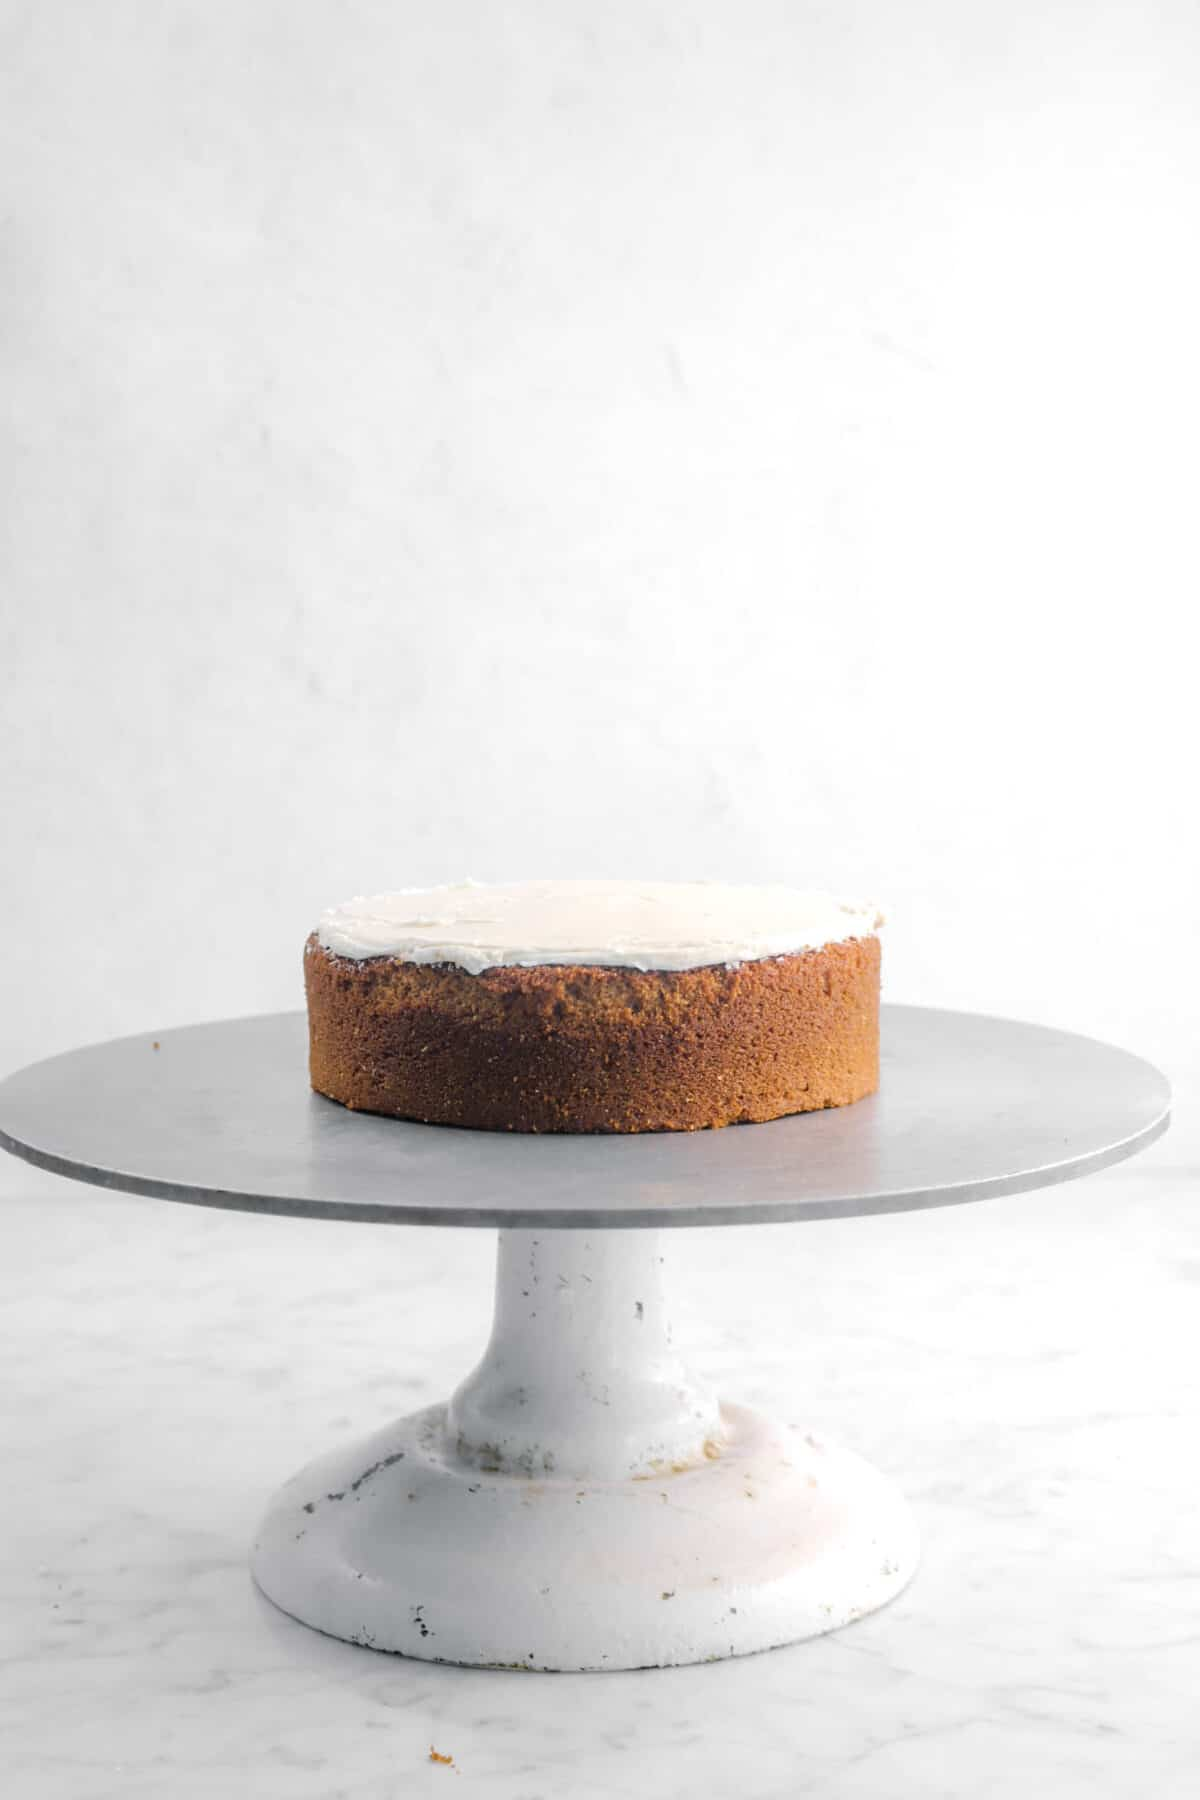 frosting spread on cake layer on a cake stand